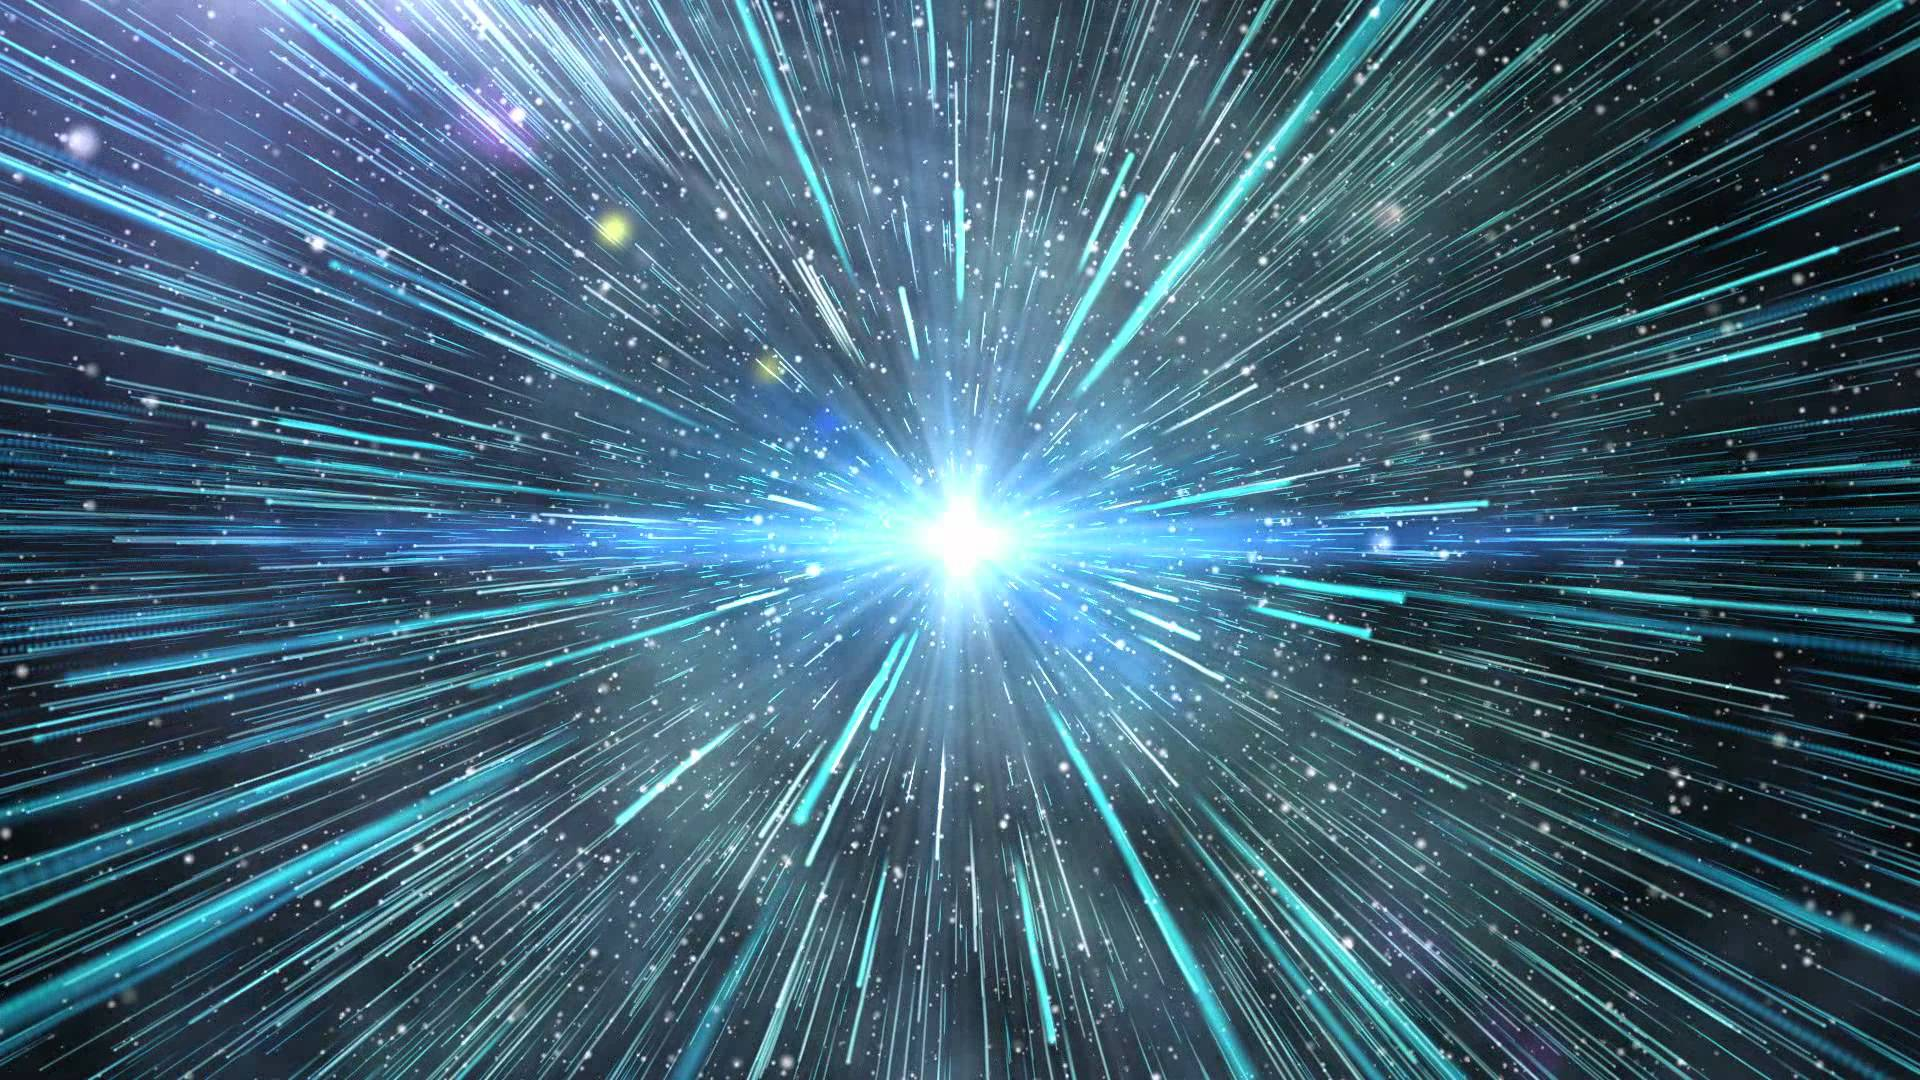 Is There An Order To Chaos In The Universe?